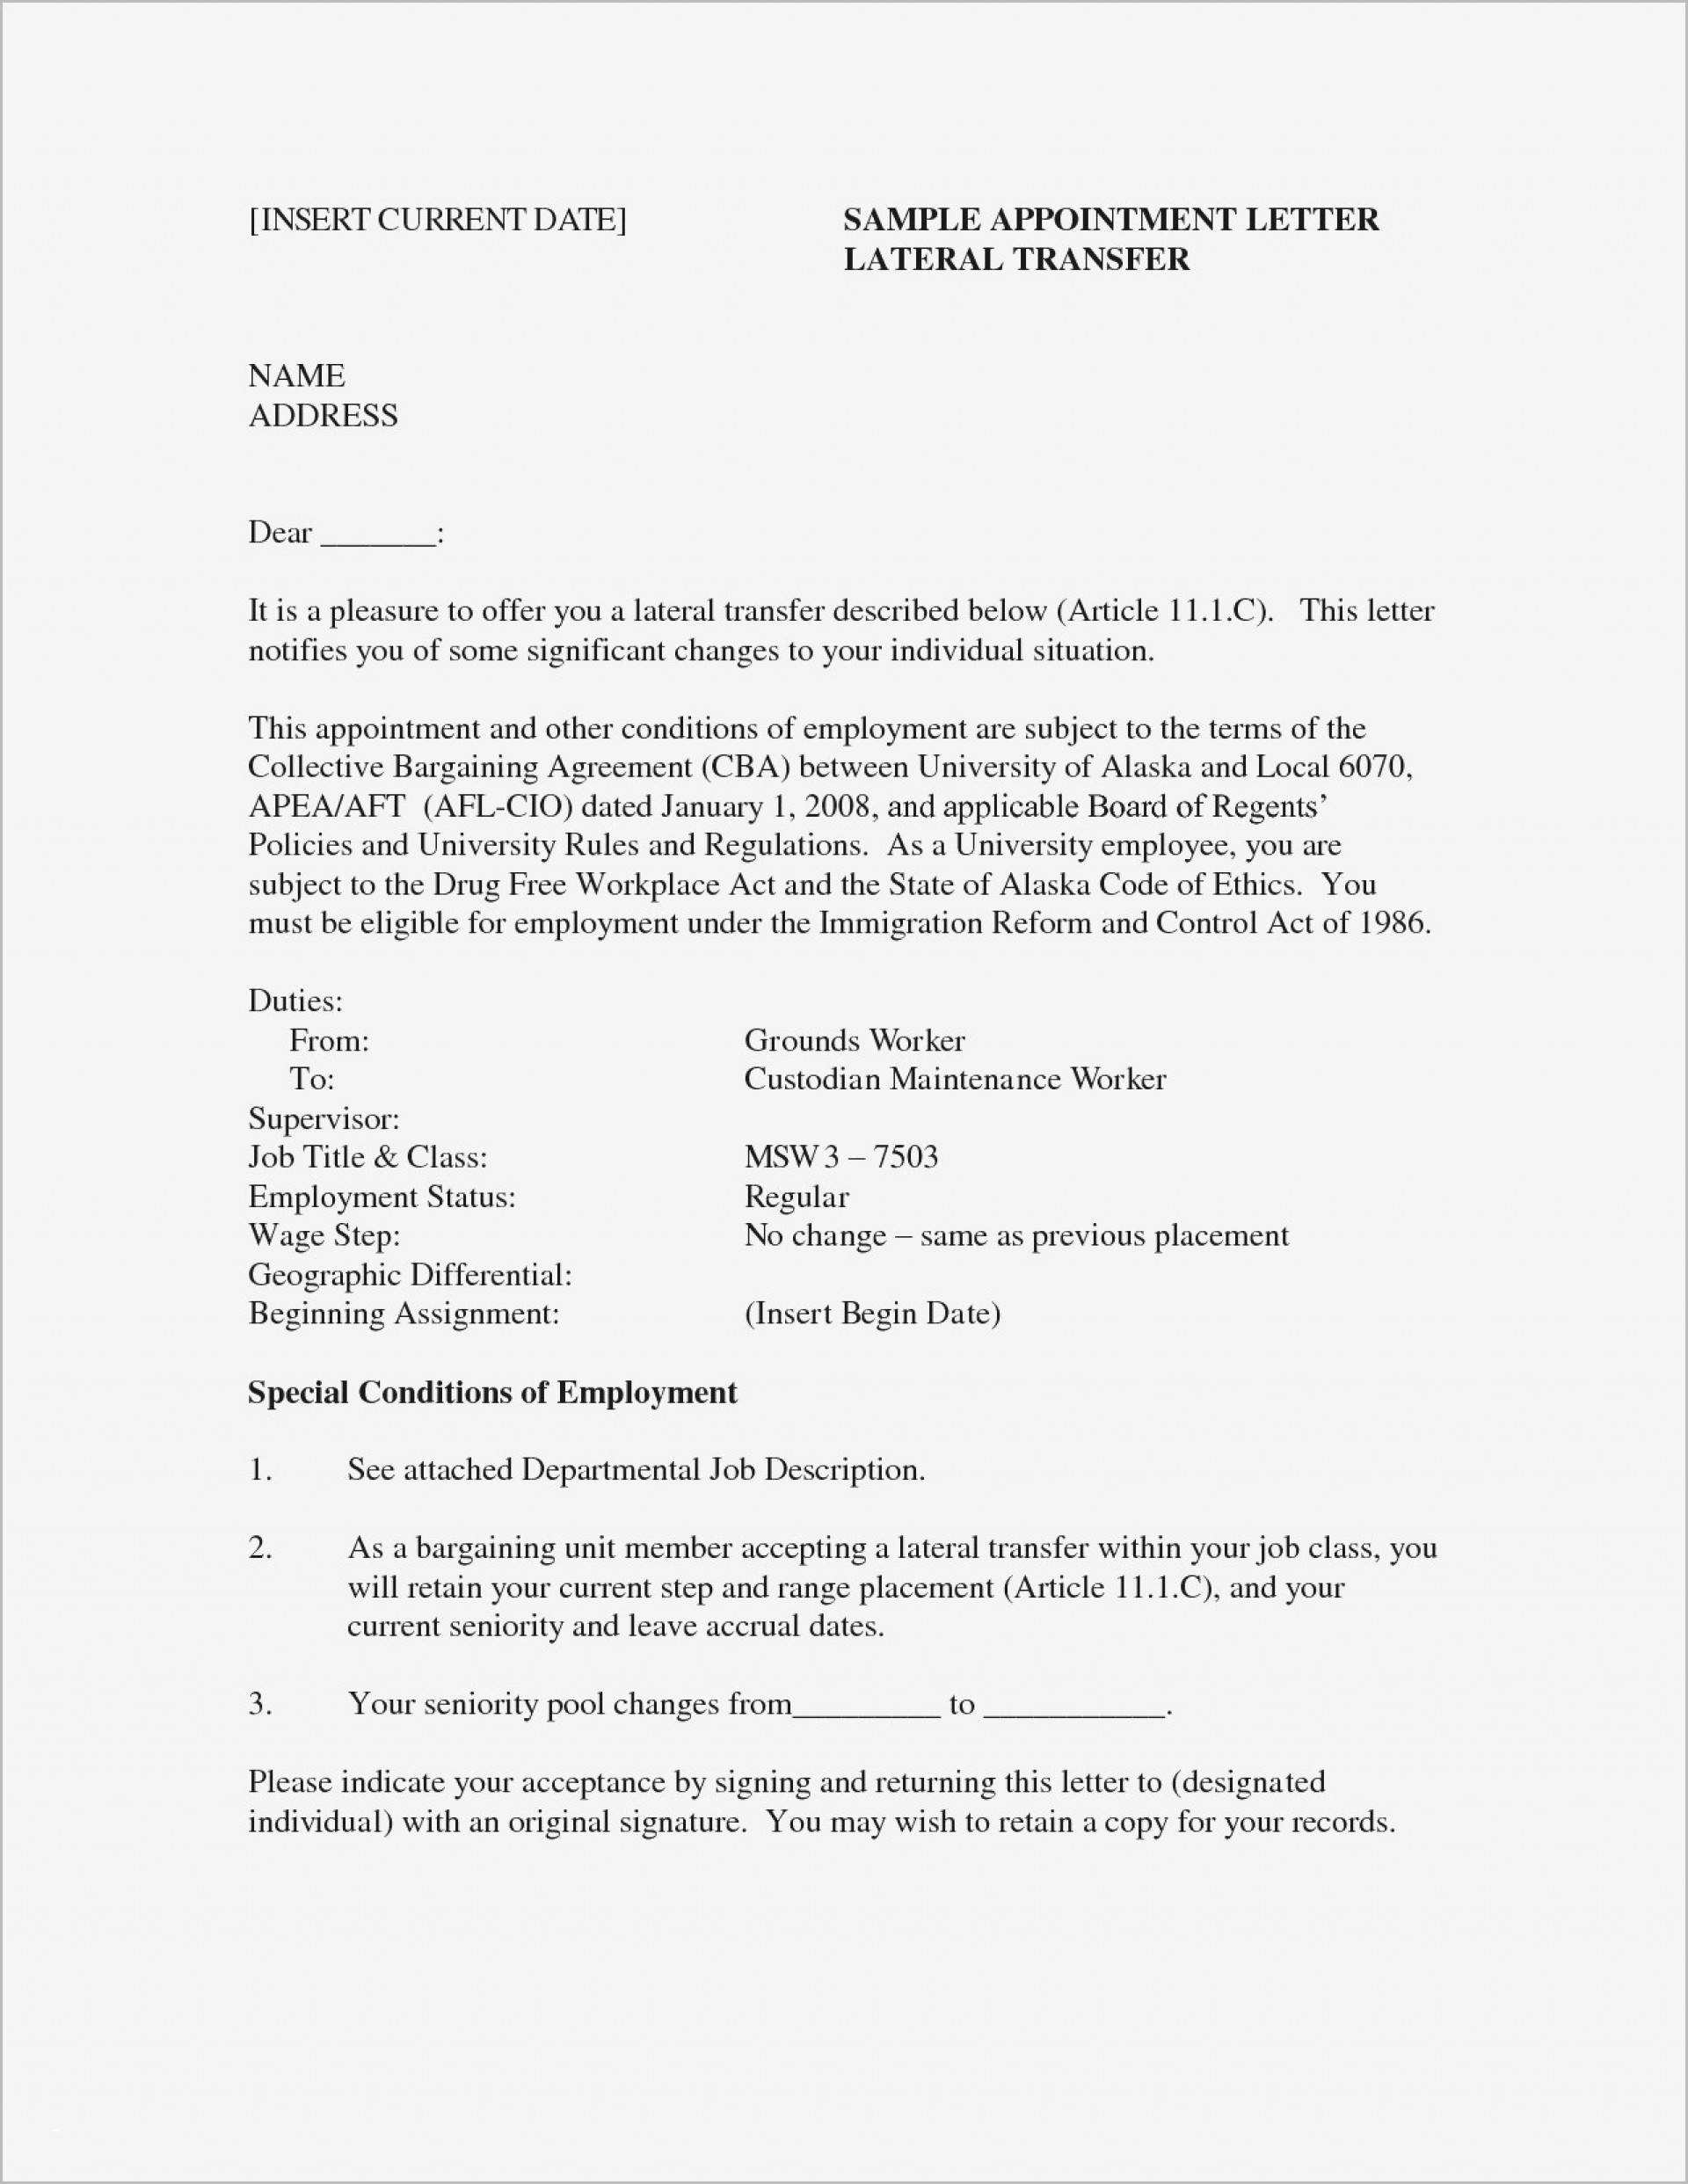 016 Resume For No Previous Work Experience Awesome Education Job Sample Of How To Write Research Paper Online Sensational A Course 1920